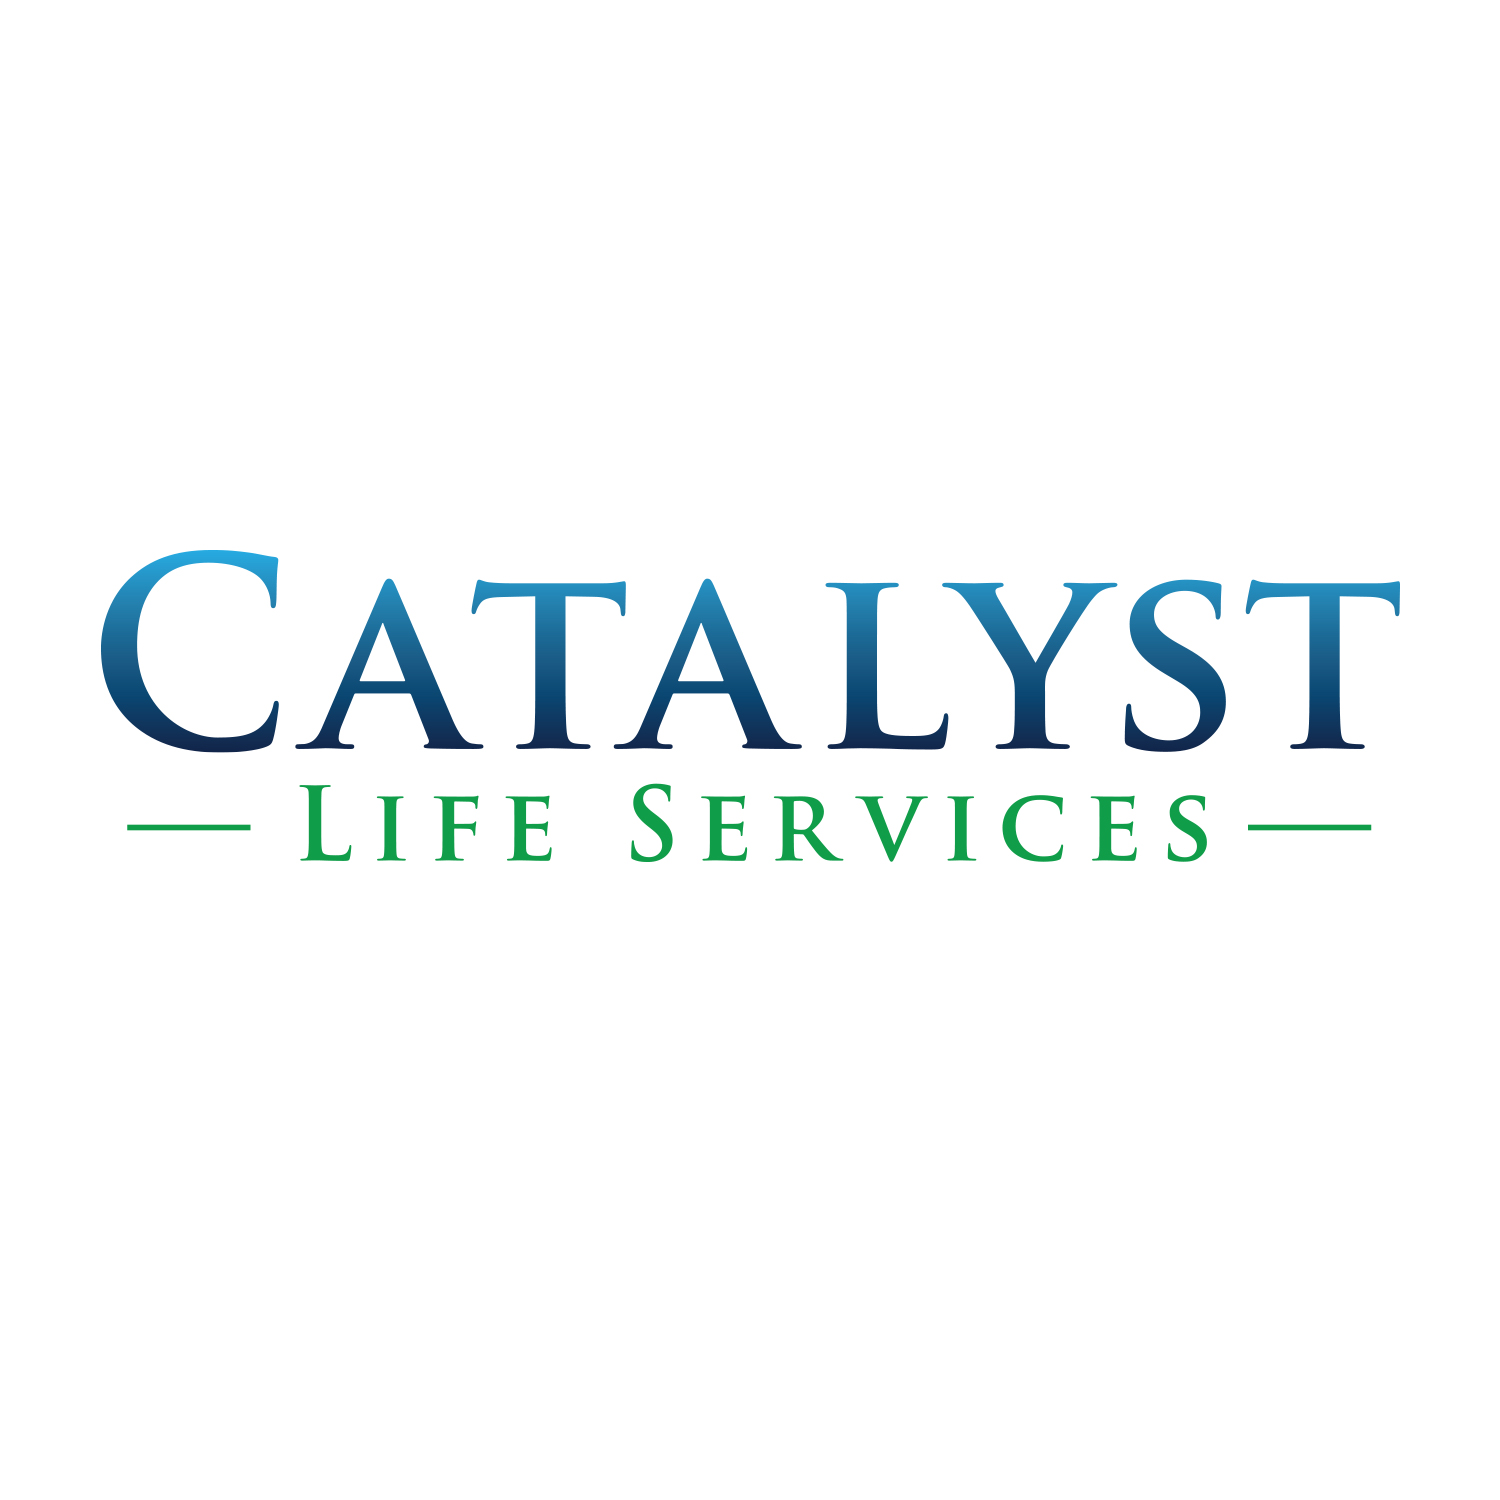 Catalyst Life Services looking for Registered Nurse for Withdrawal Management Facility